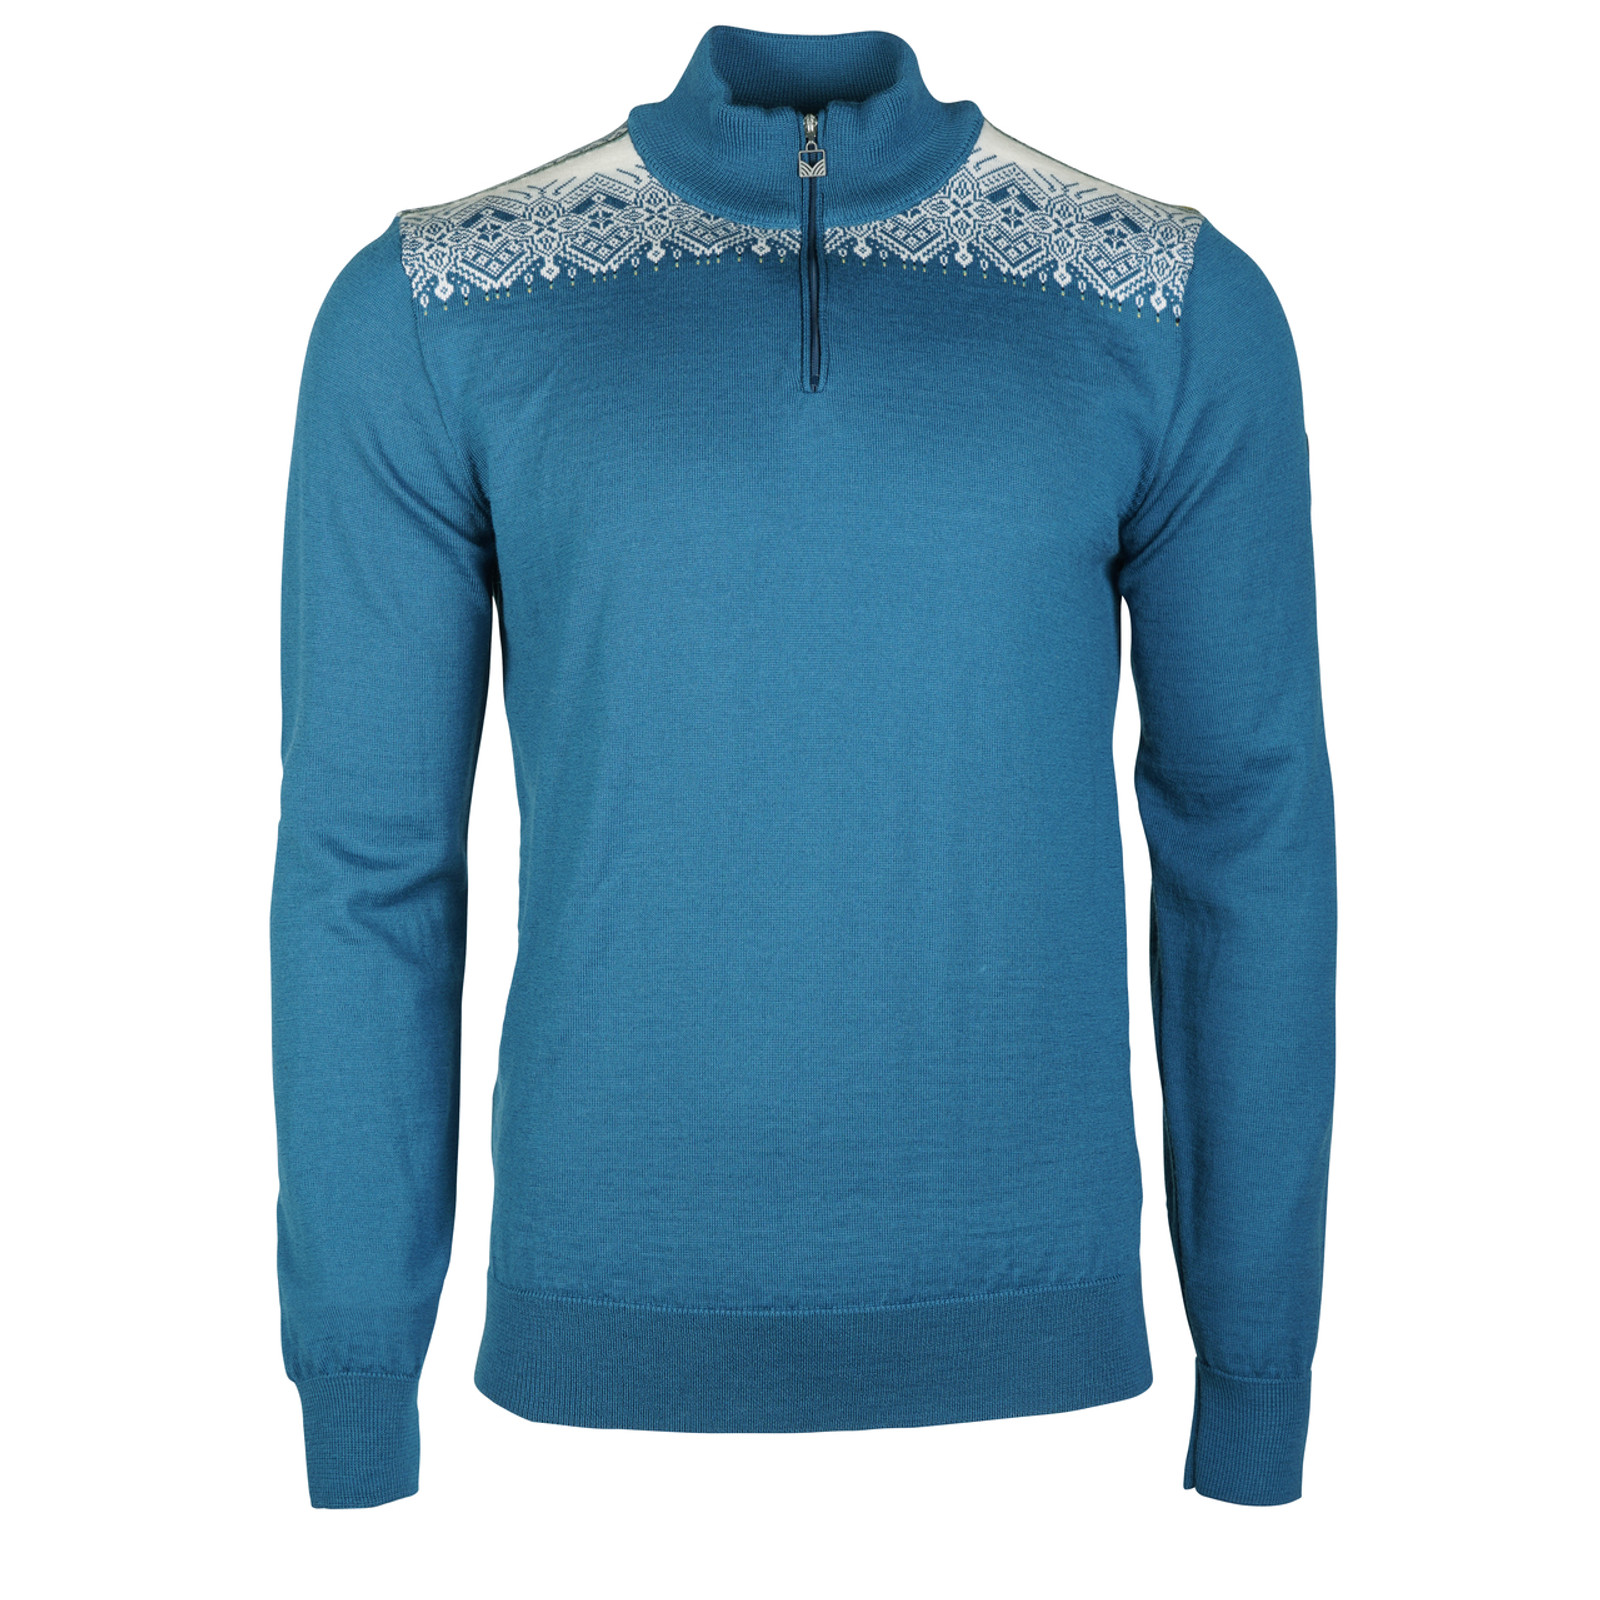 Dale of Norway Fiemme Sweater, mens, in Arctic Blue/Sweethoney/Turquoise/Navy/Off White, 93421-C